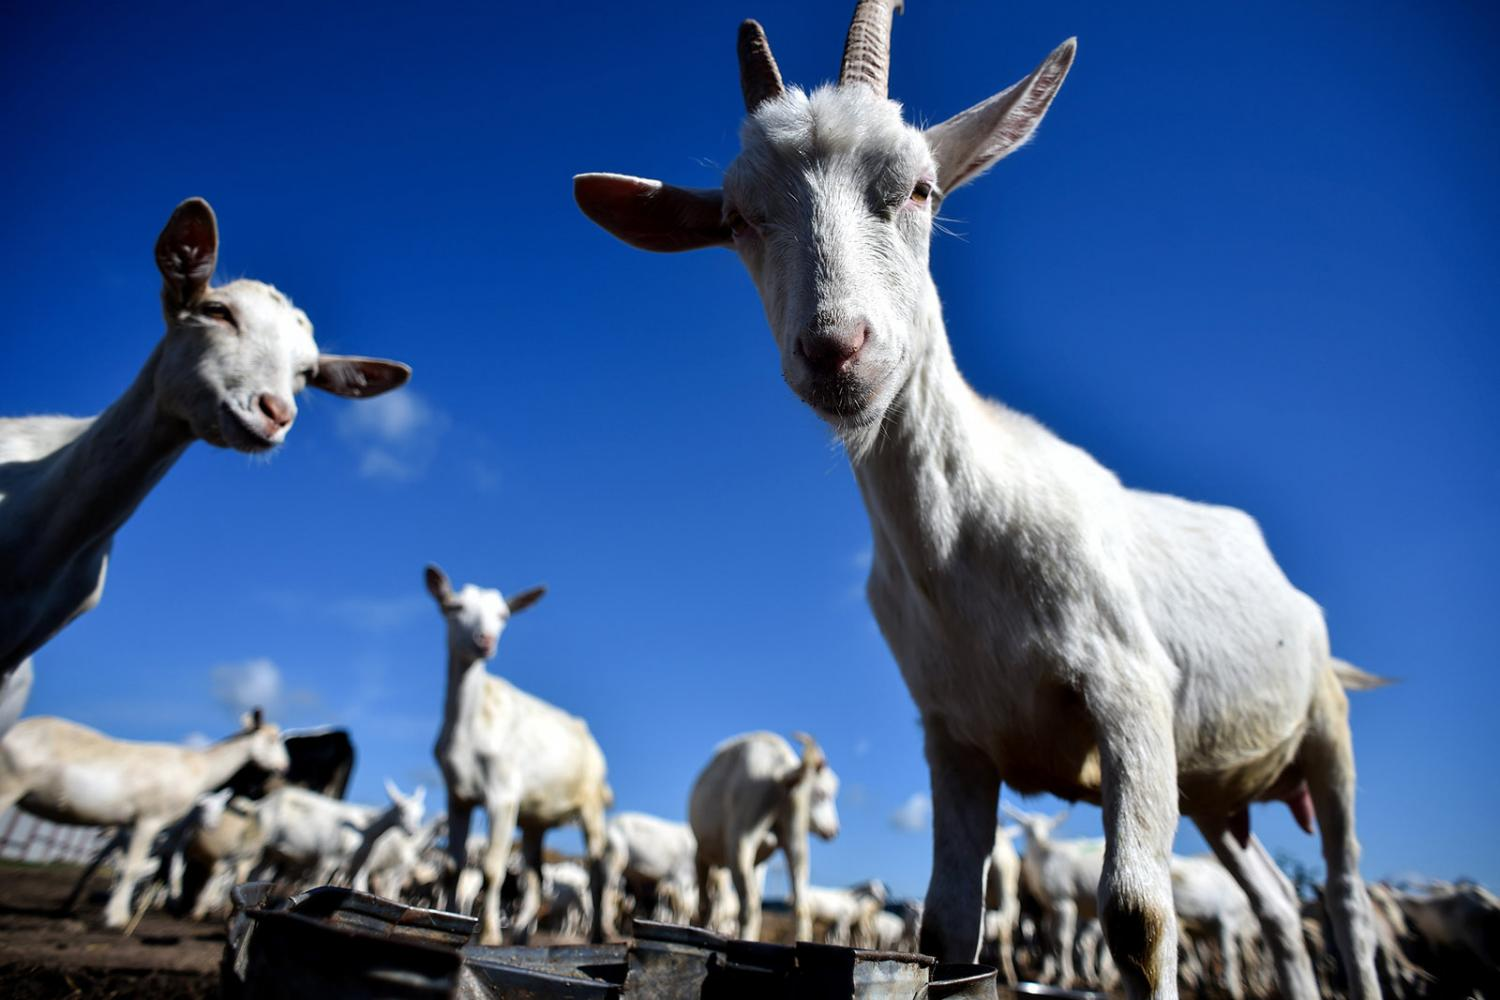 How Goats (And Perhaps People) Make Up Their Minds